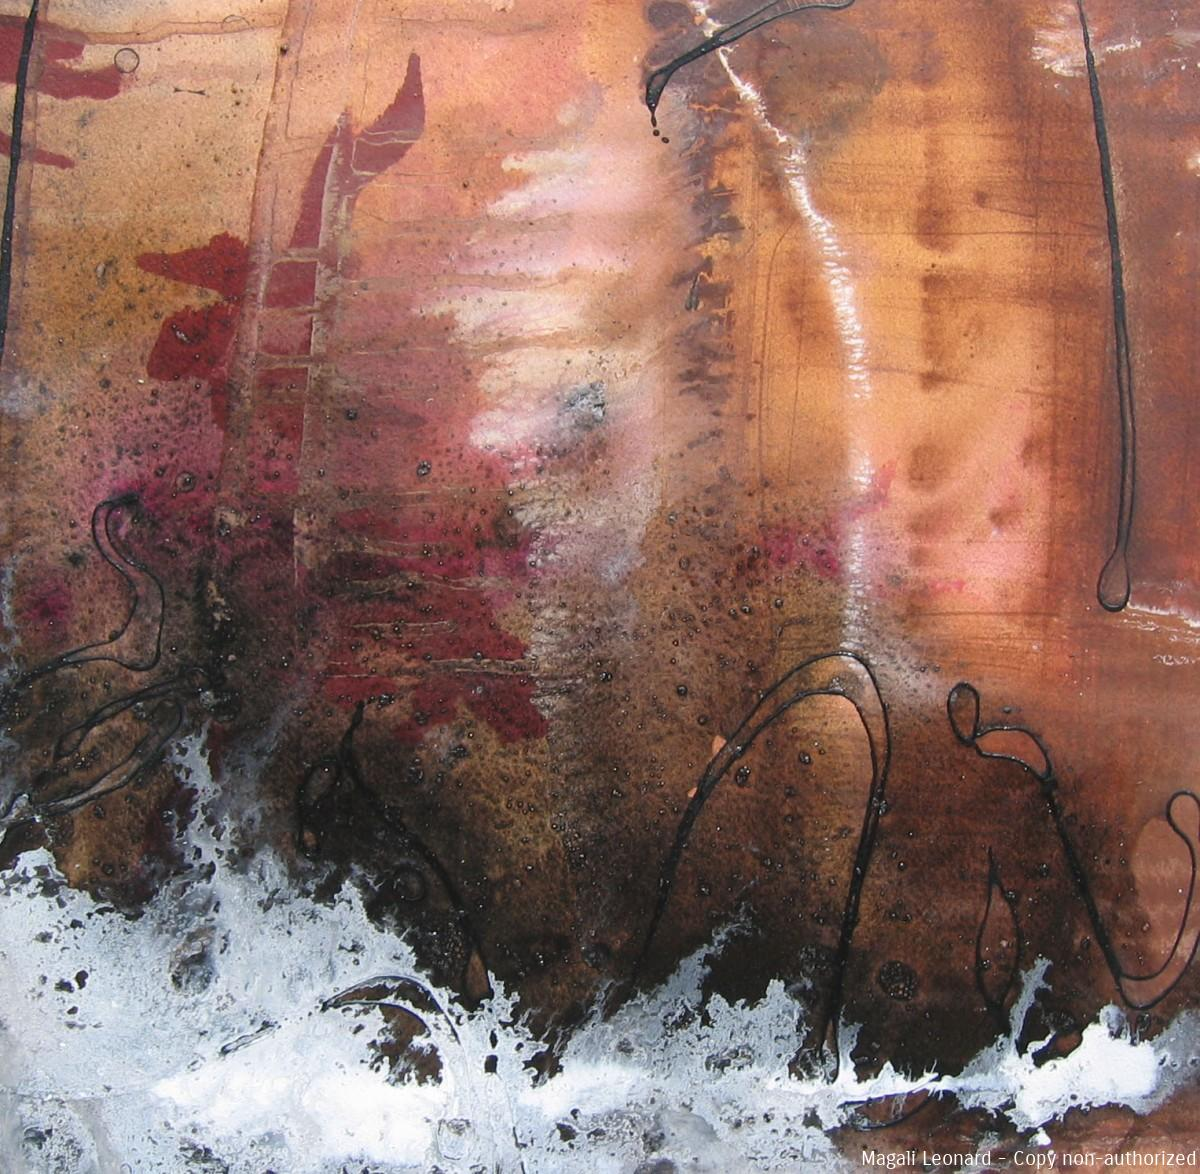 Terre 2, 2008, Mixed media on paper, 15,74 X 15,74 inches, 40 X 40 cm copie